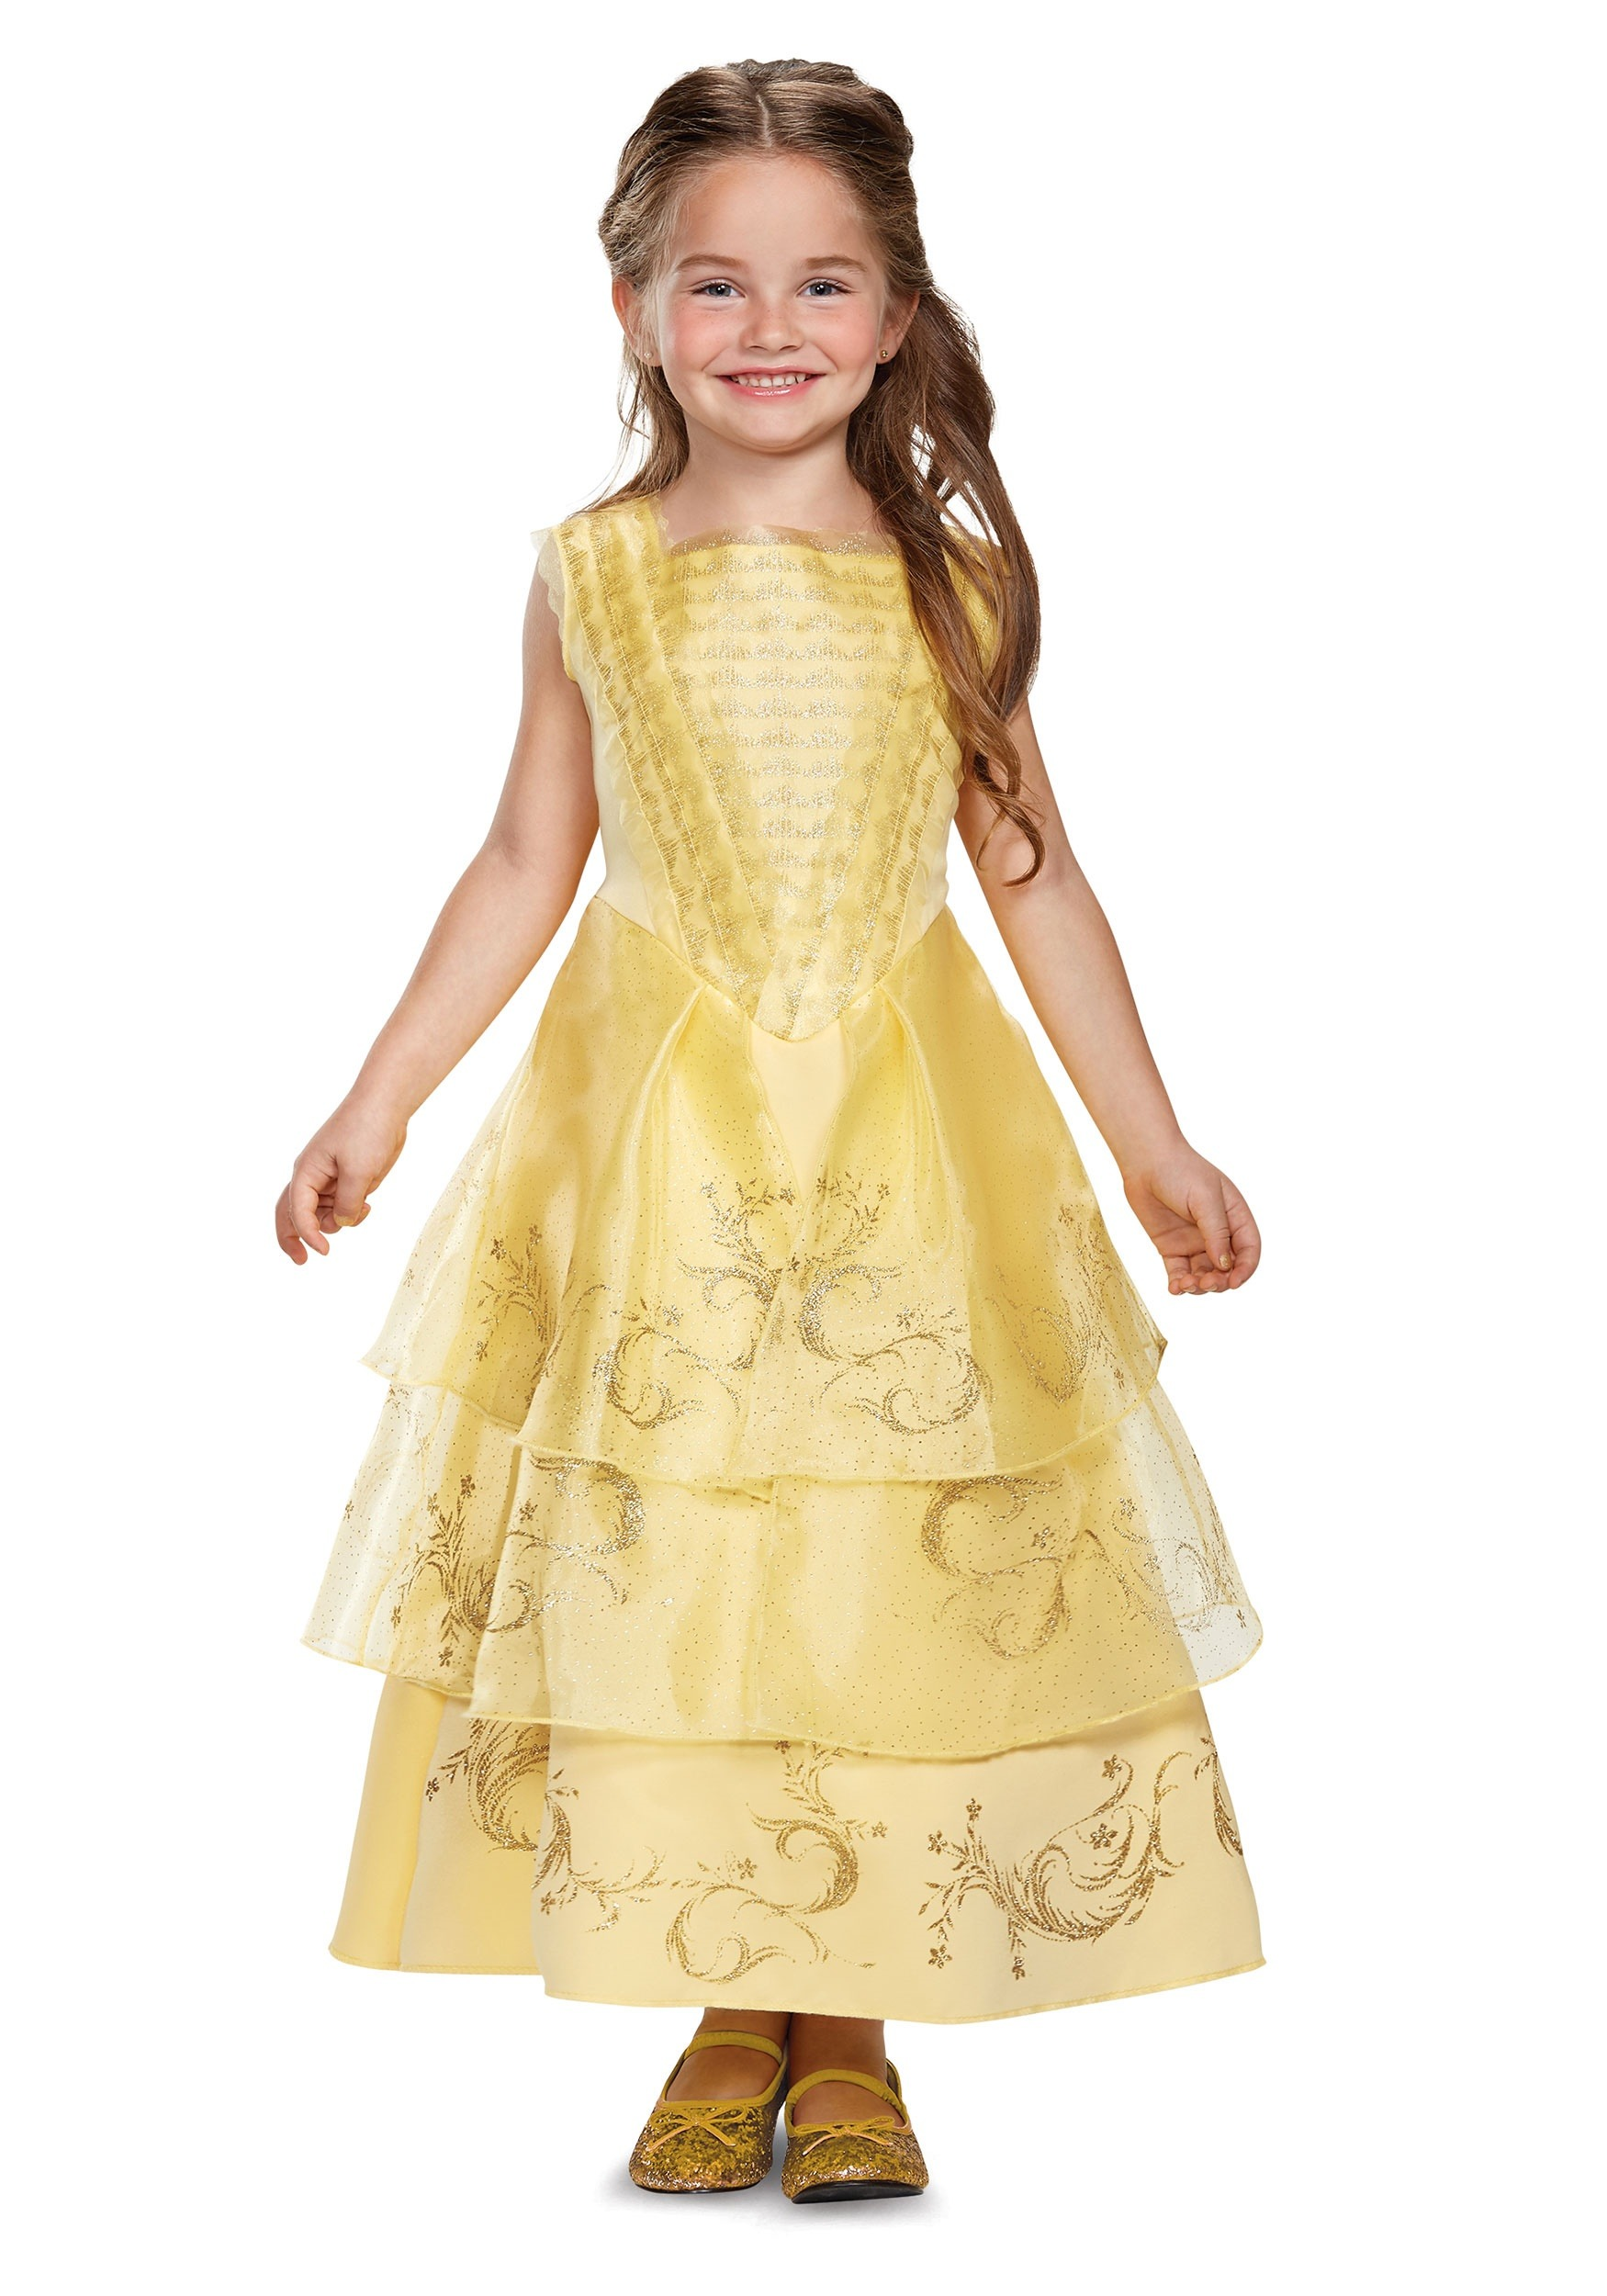 Belle Ball Gown Deluxe Child  sc 1 st  Halloween Costumes & Child Belle Ball Gown Deluxe Costume